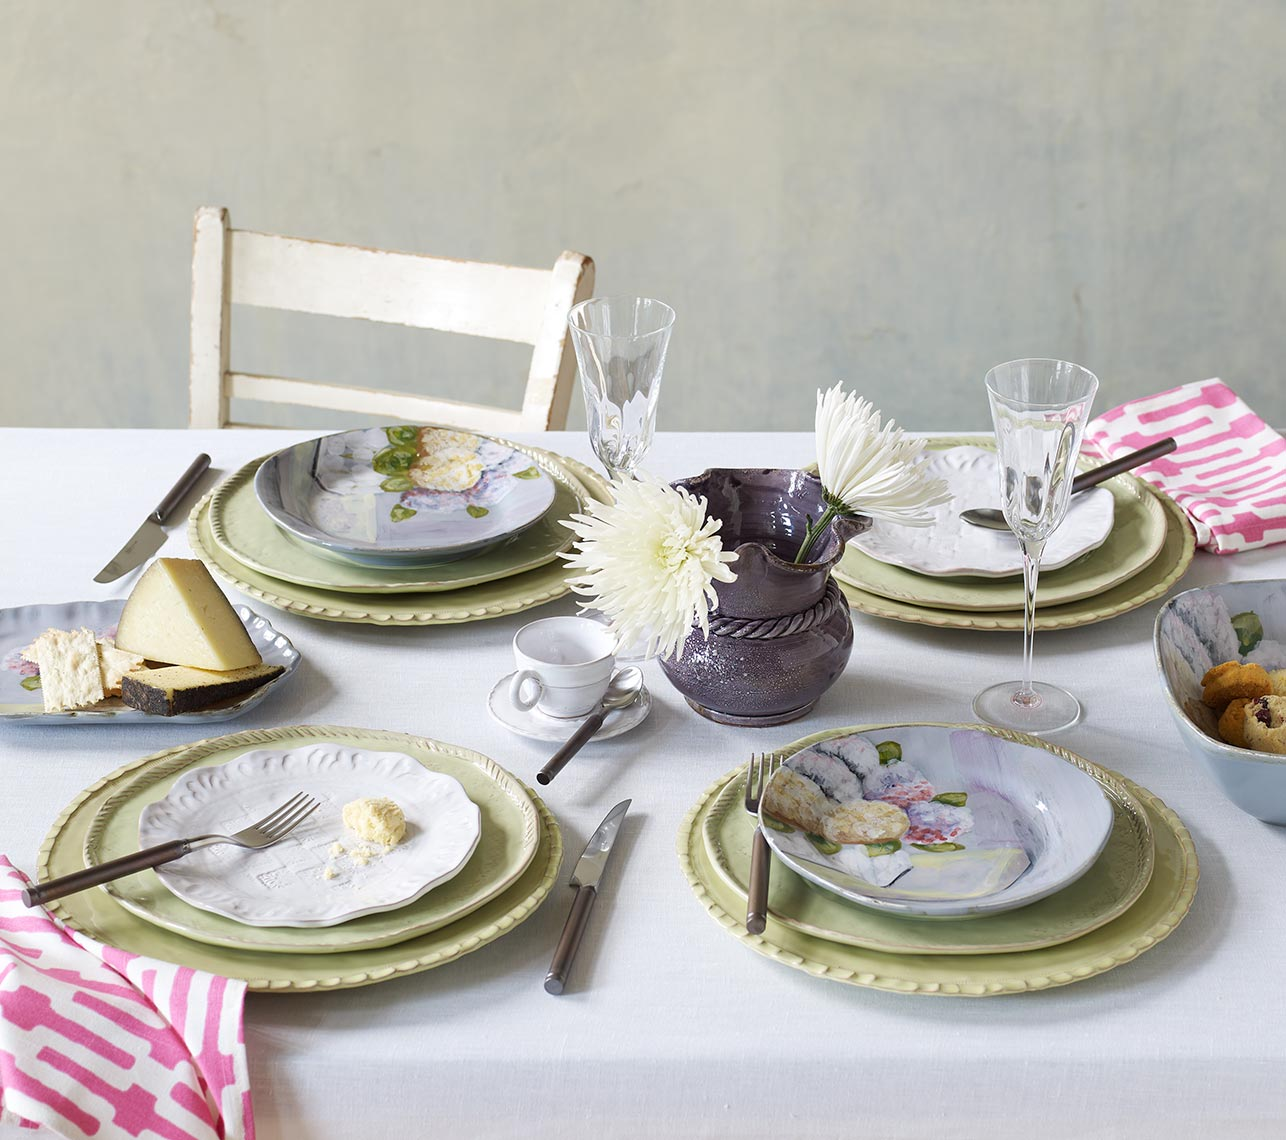 table scene with plates and flowers